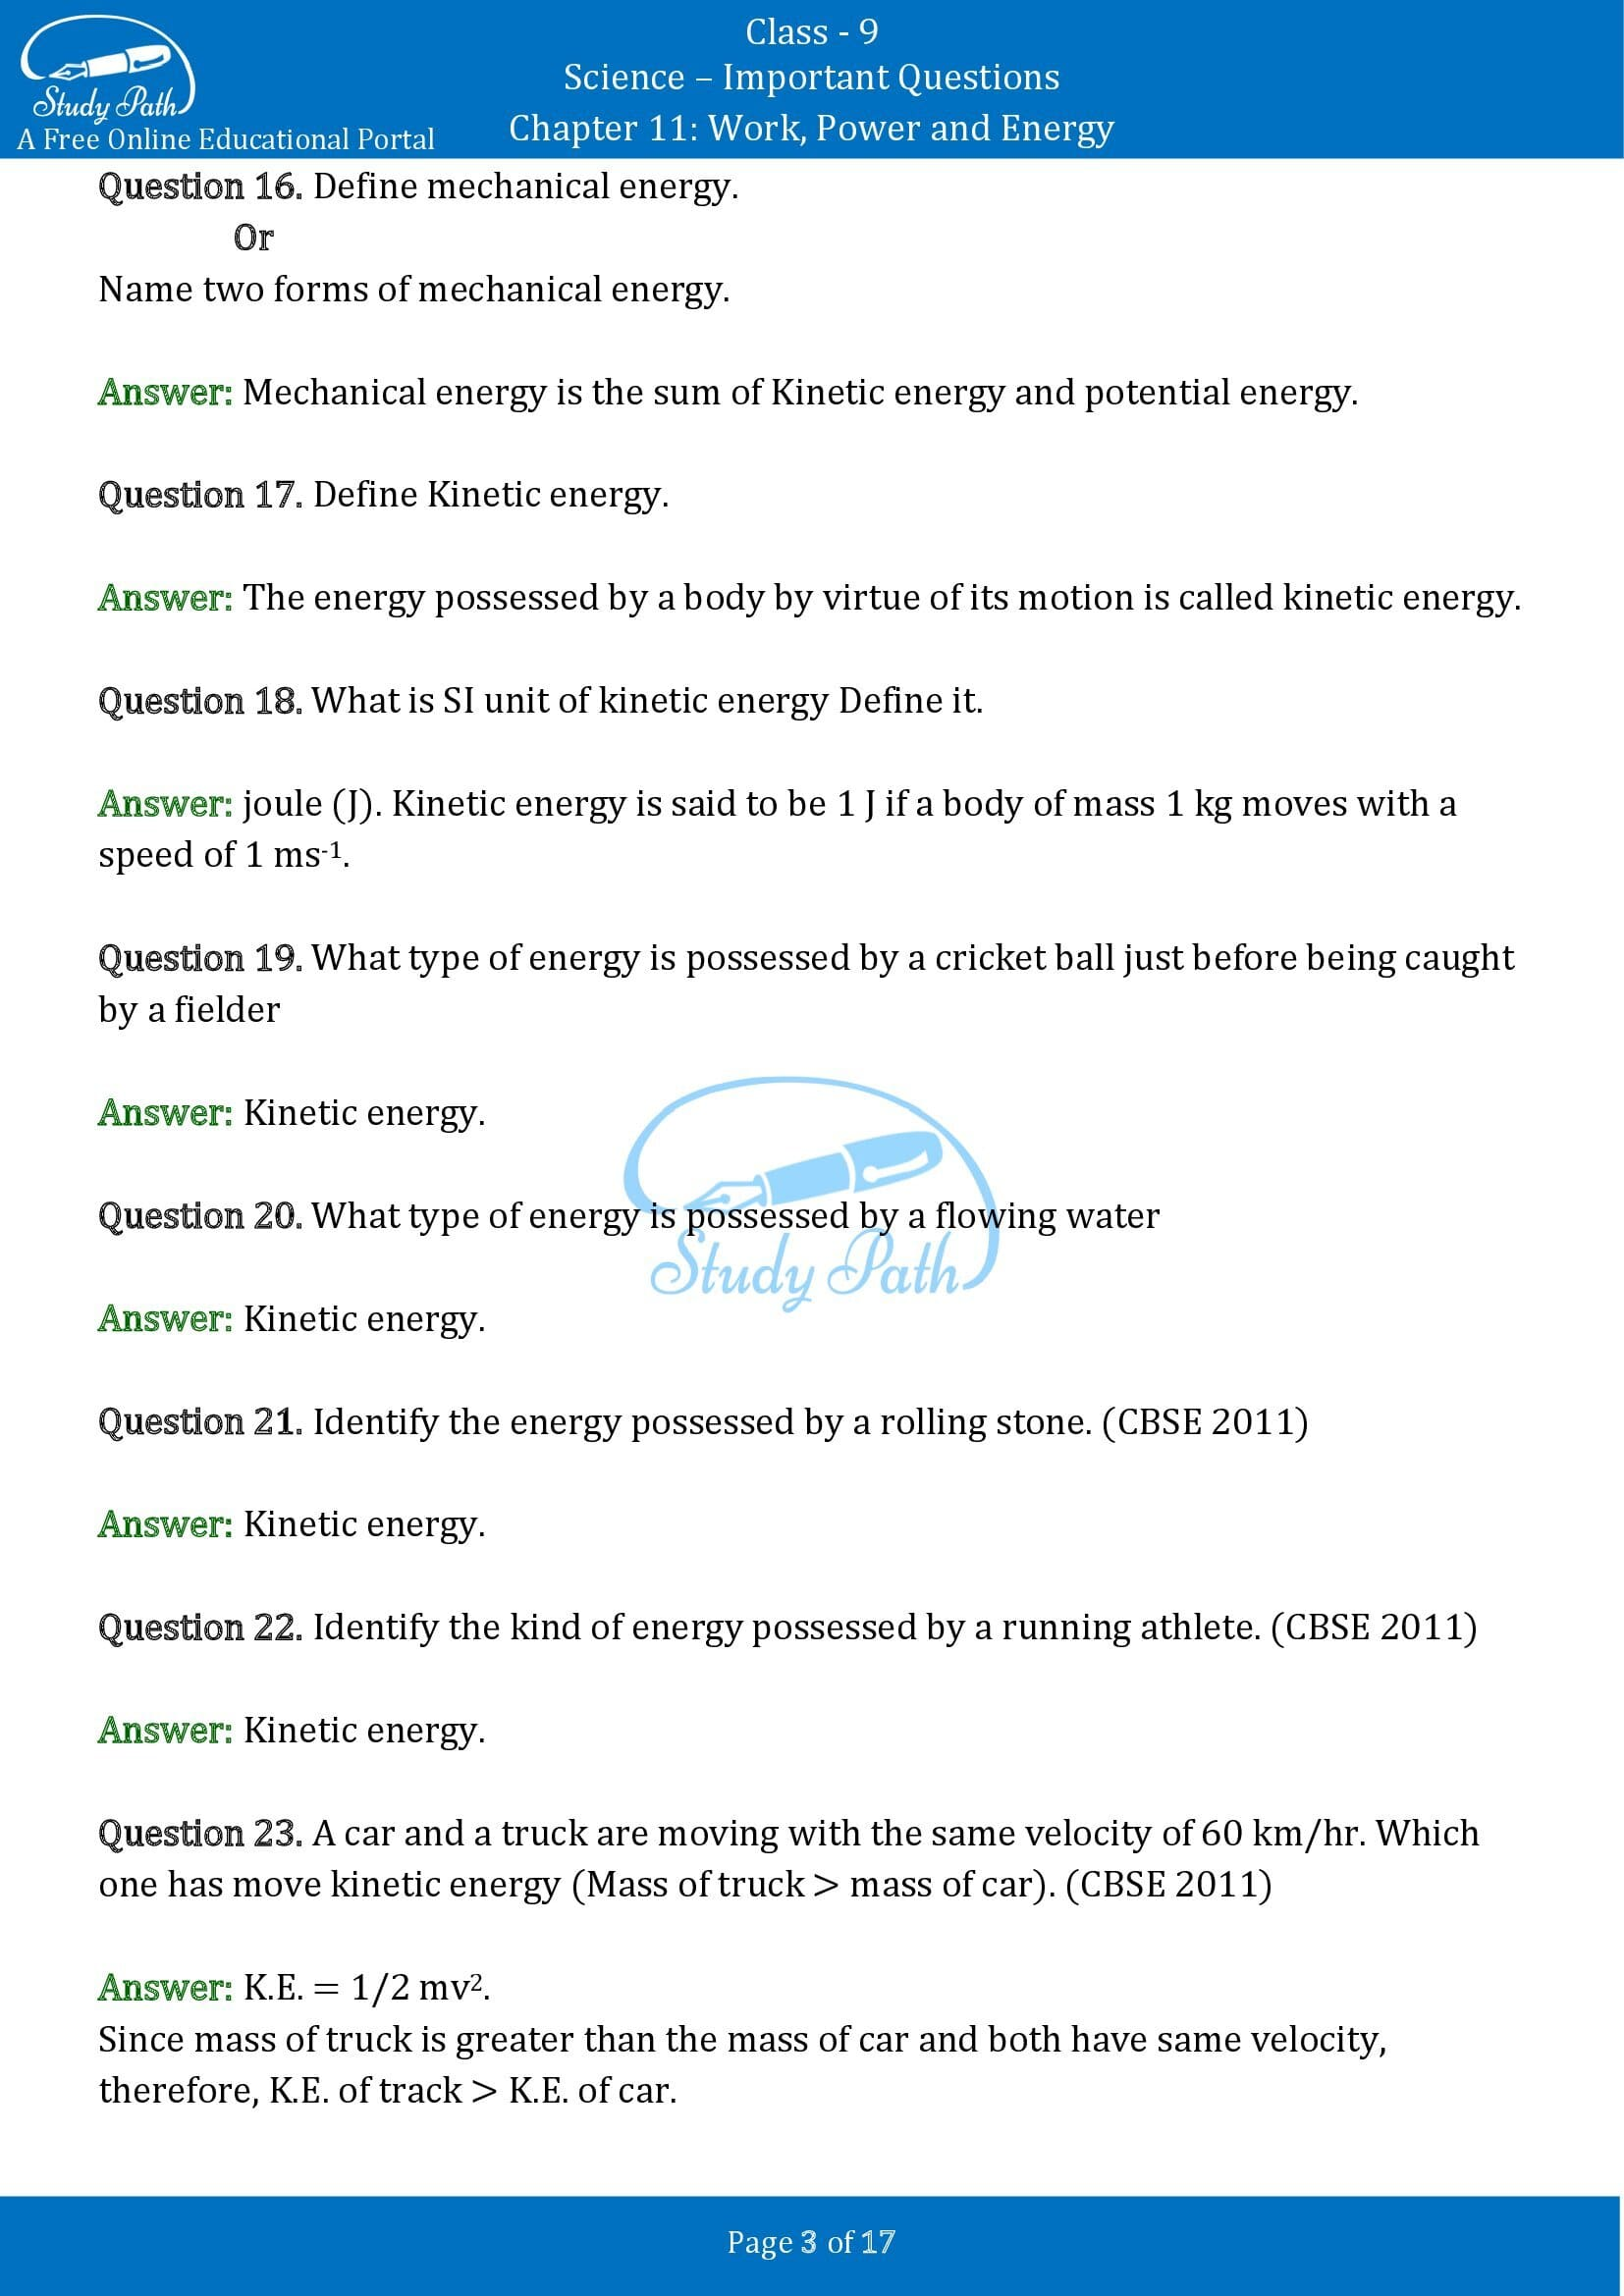 Important Questions for Class 9 Science Chapter 11 Work Power and Energy 00003